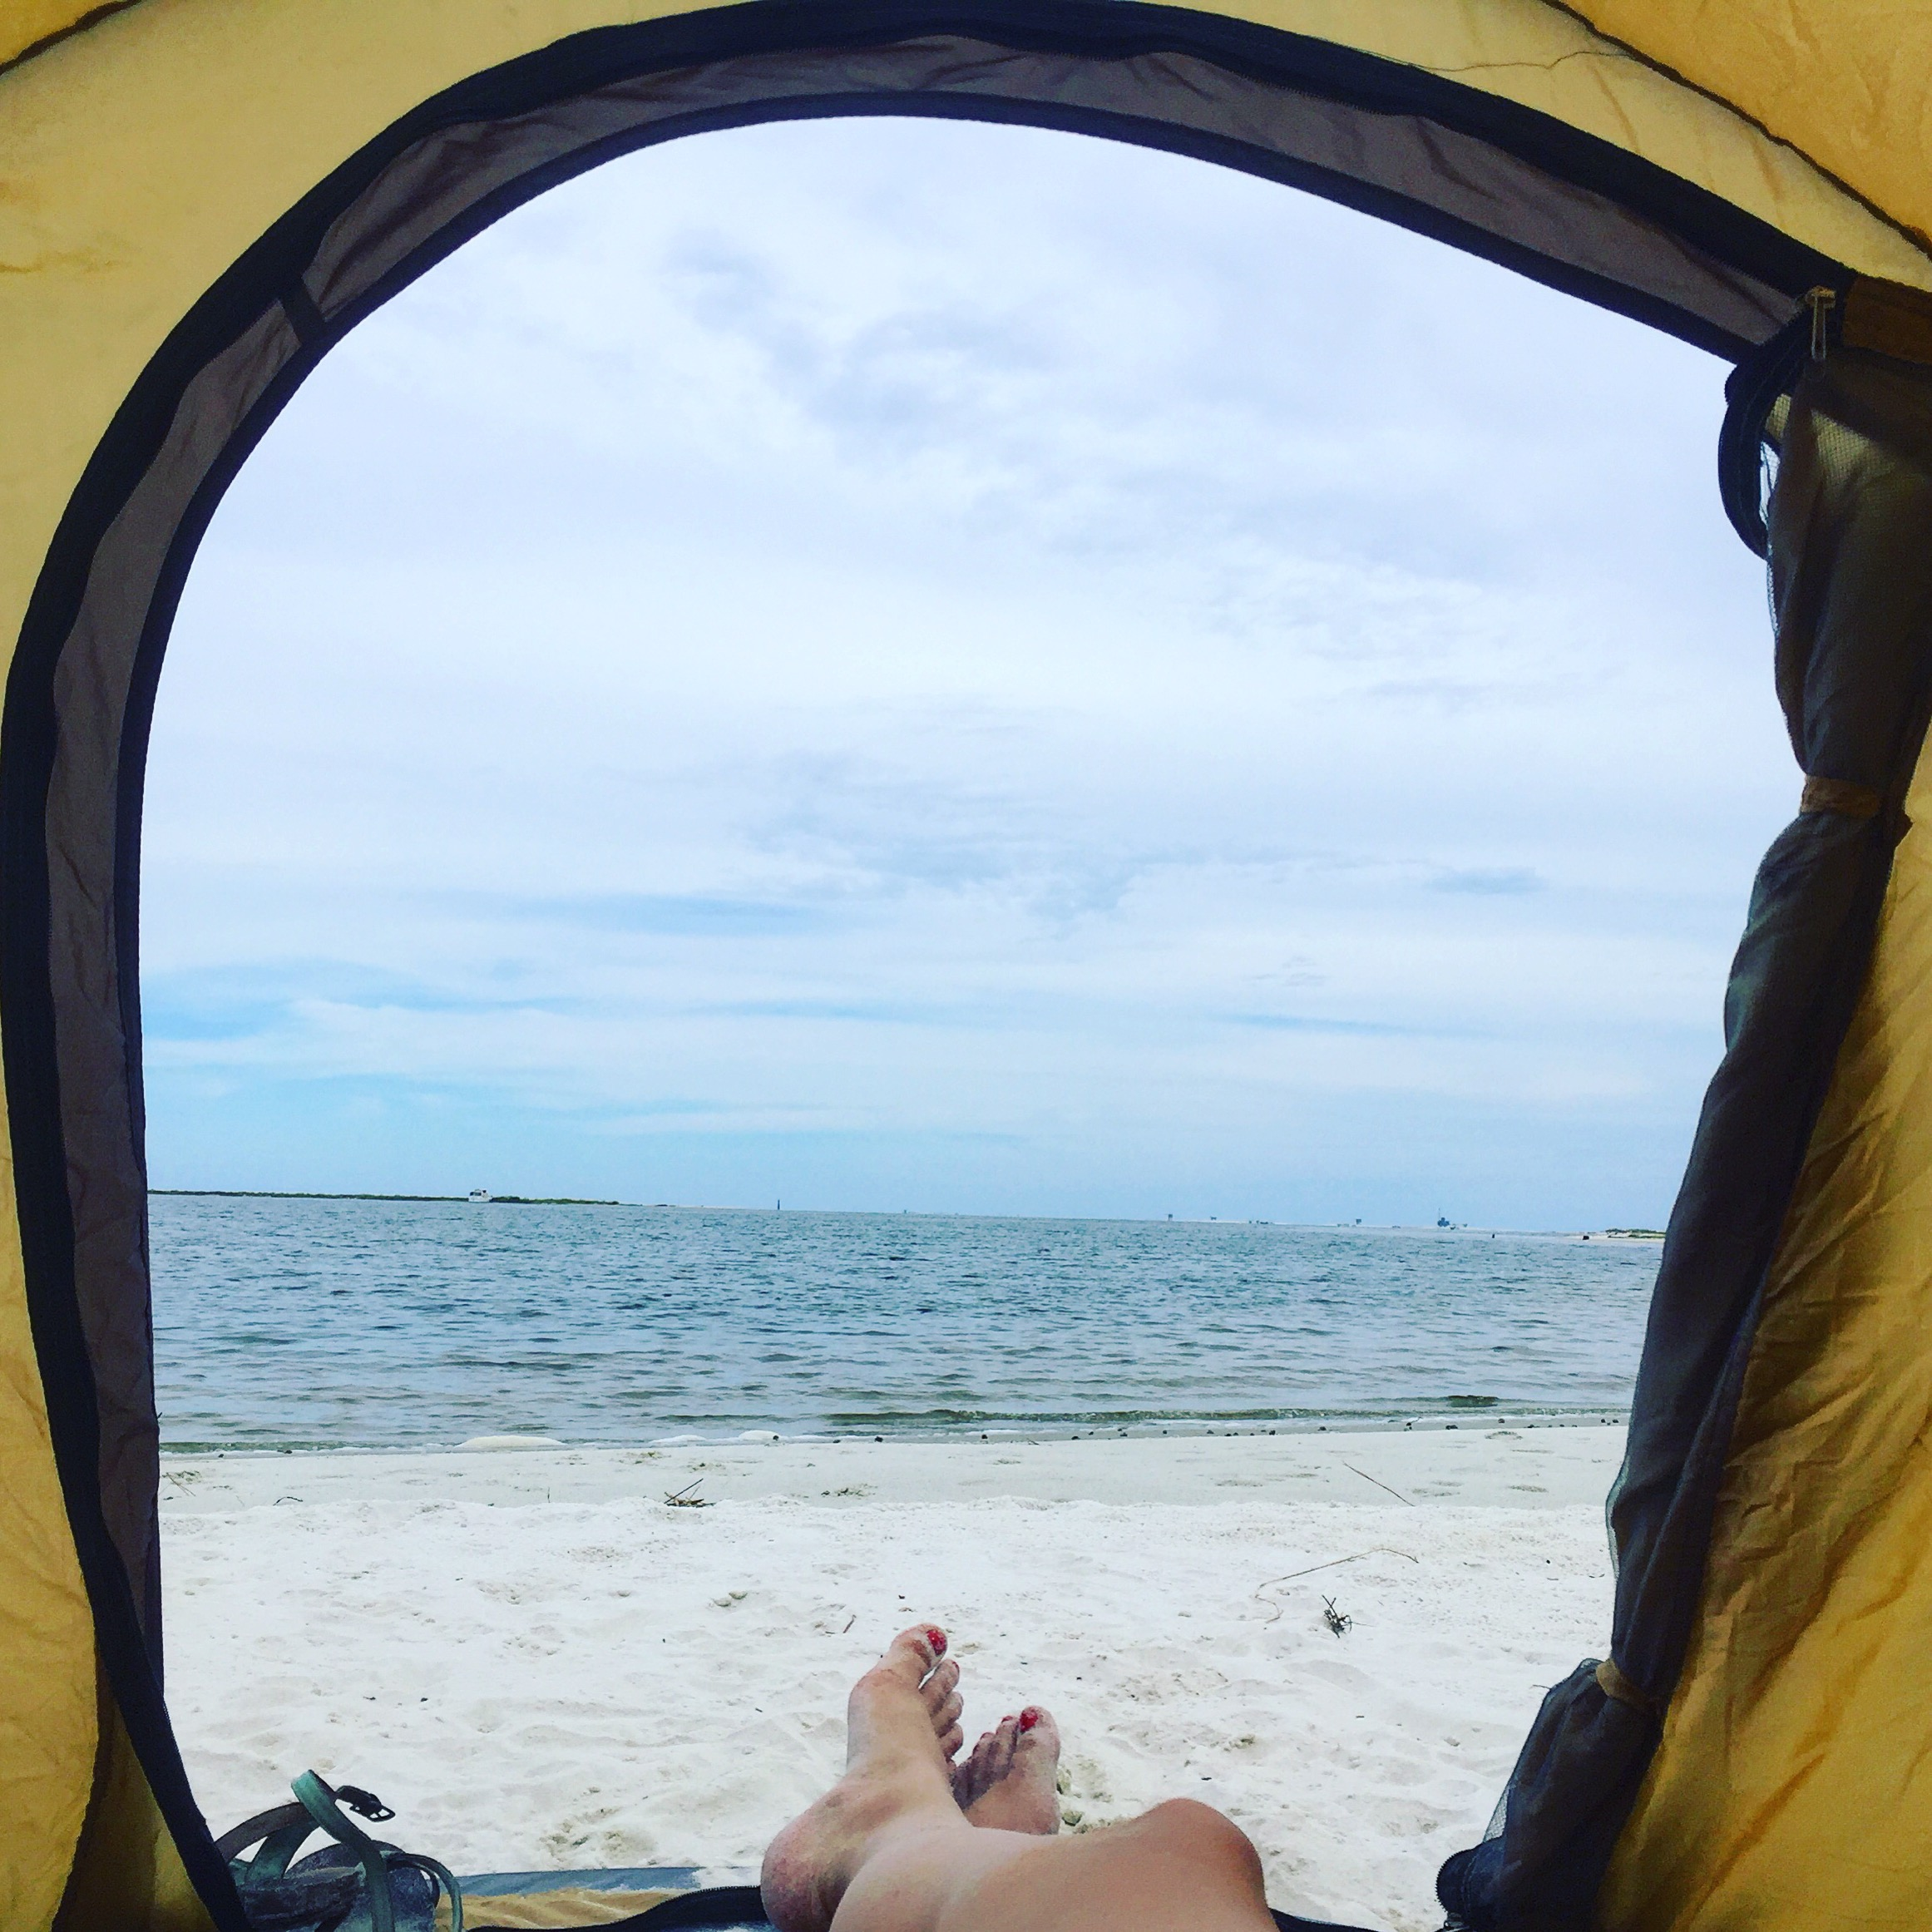 Relaxation time at Dauphin Island.